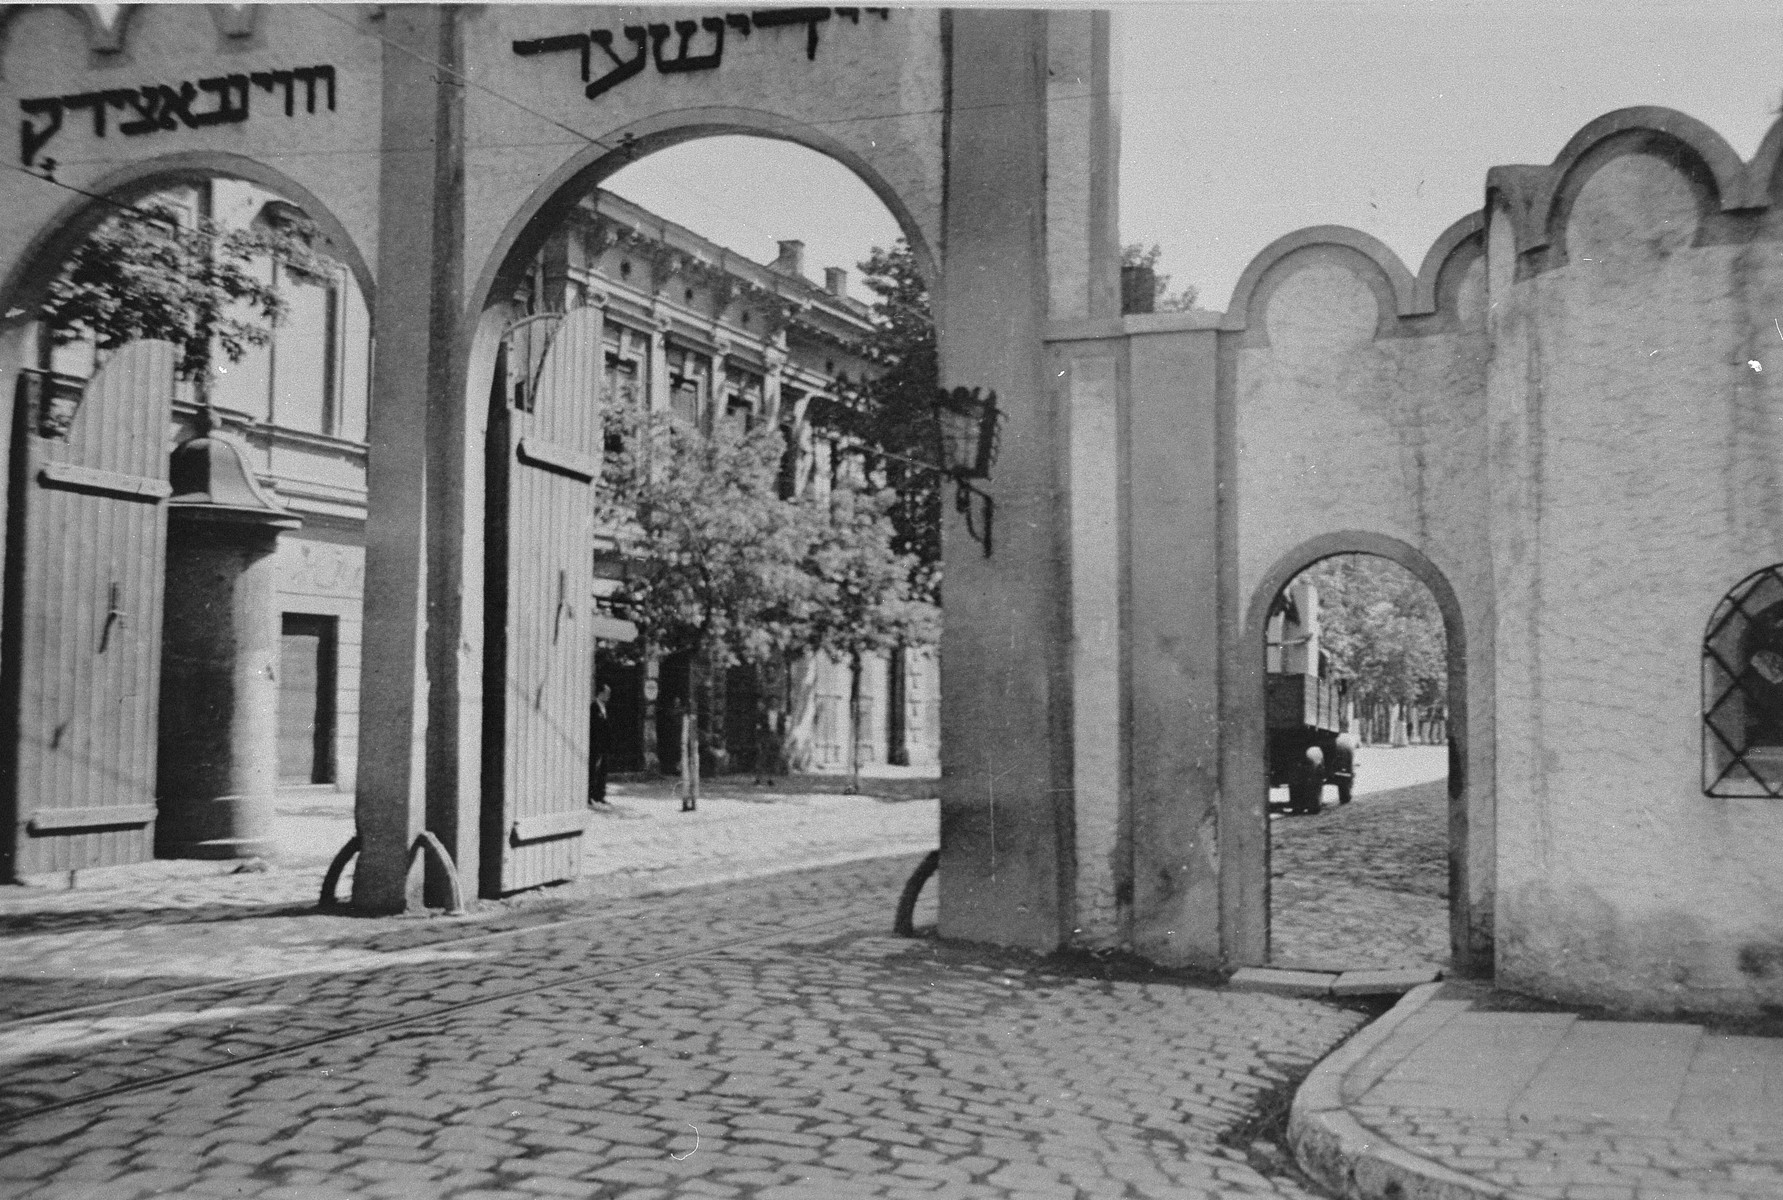 View of the arched entrance to the Krakow ghetto.